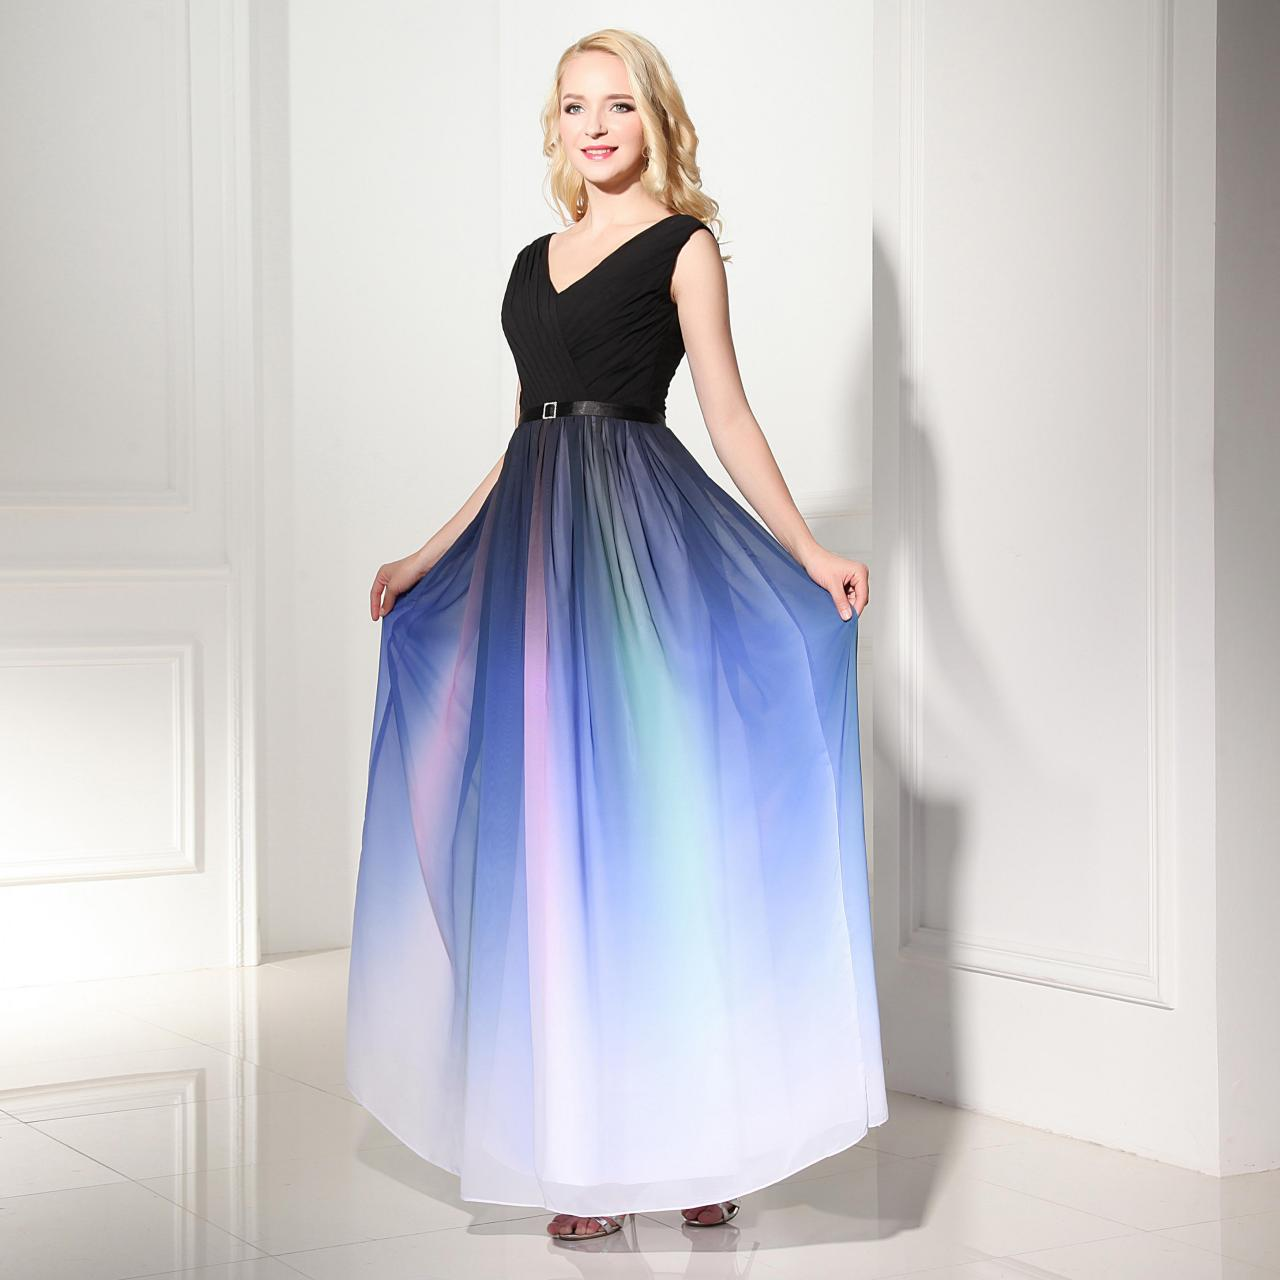 Ombre Wedding Gown: Off The Shoulder Colorized Gradient Chiffon Prom Dresses